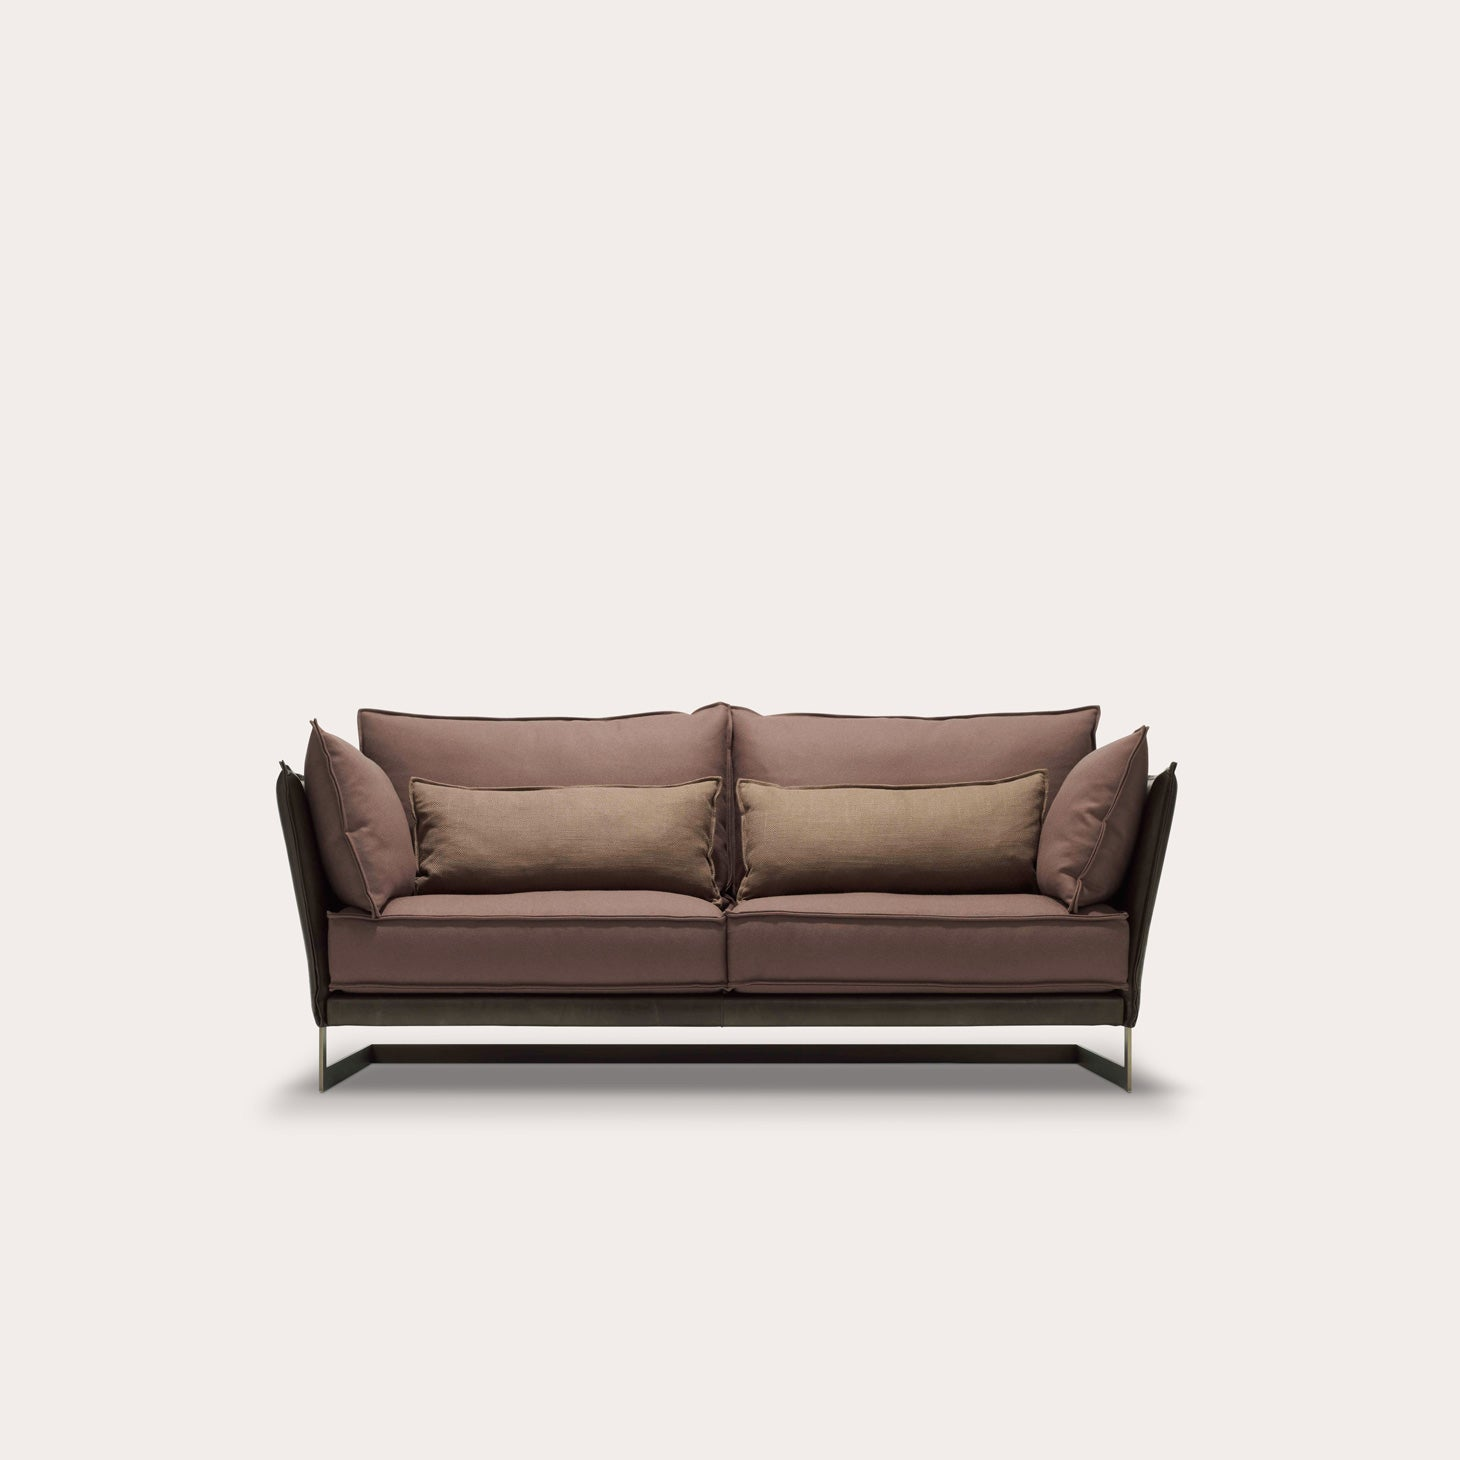 Mulberry Street Sofa Seating Marcel Wolterinck Designer Furniture Sku: 247-240-10358